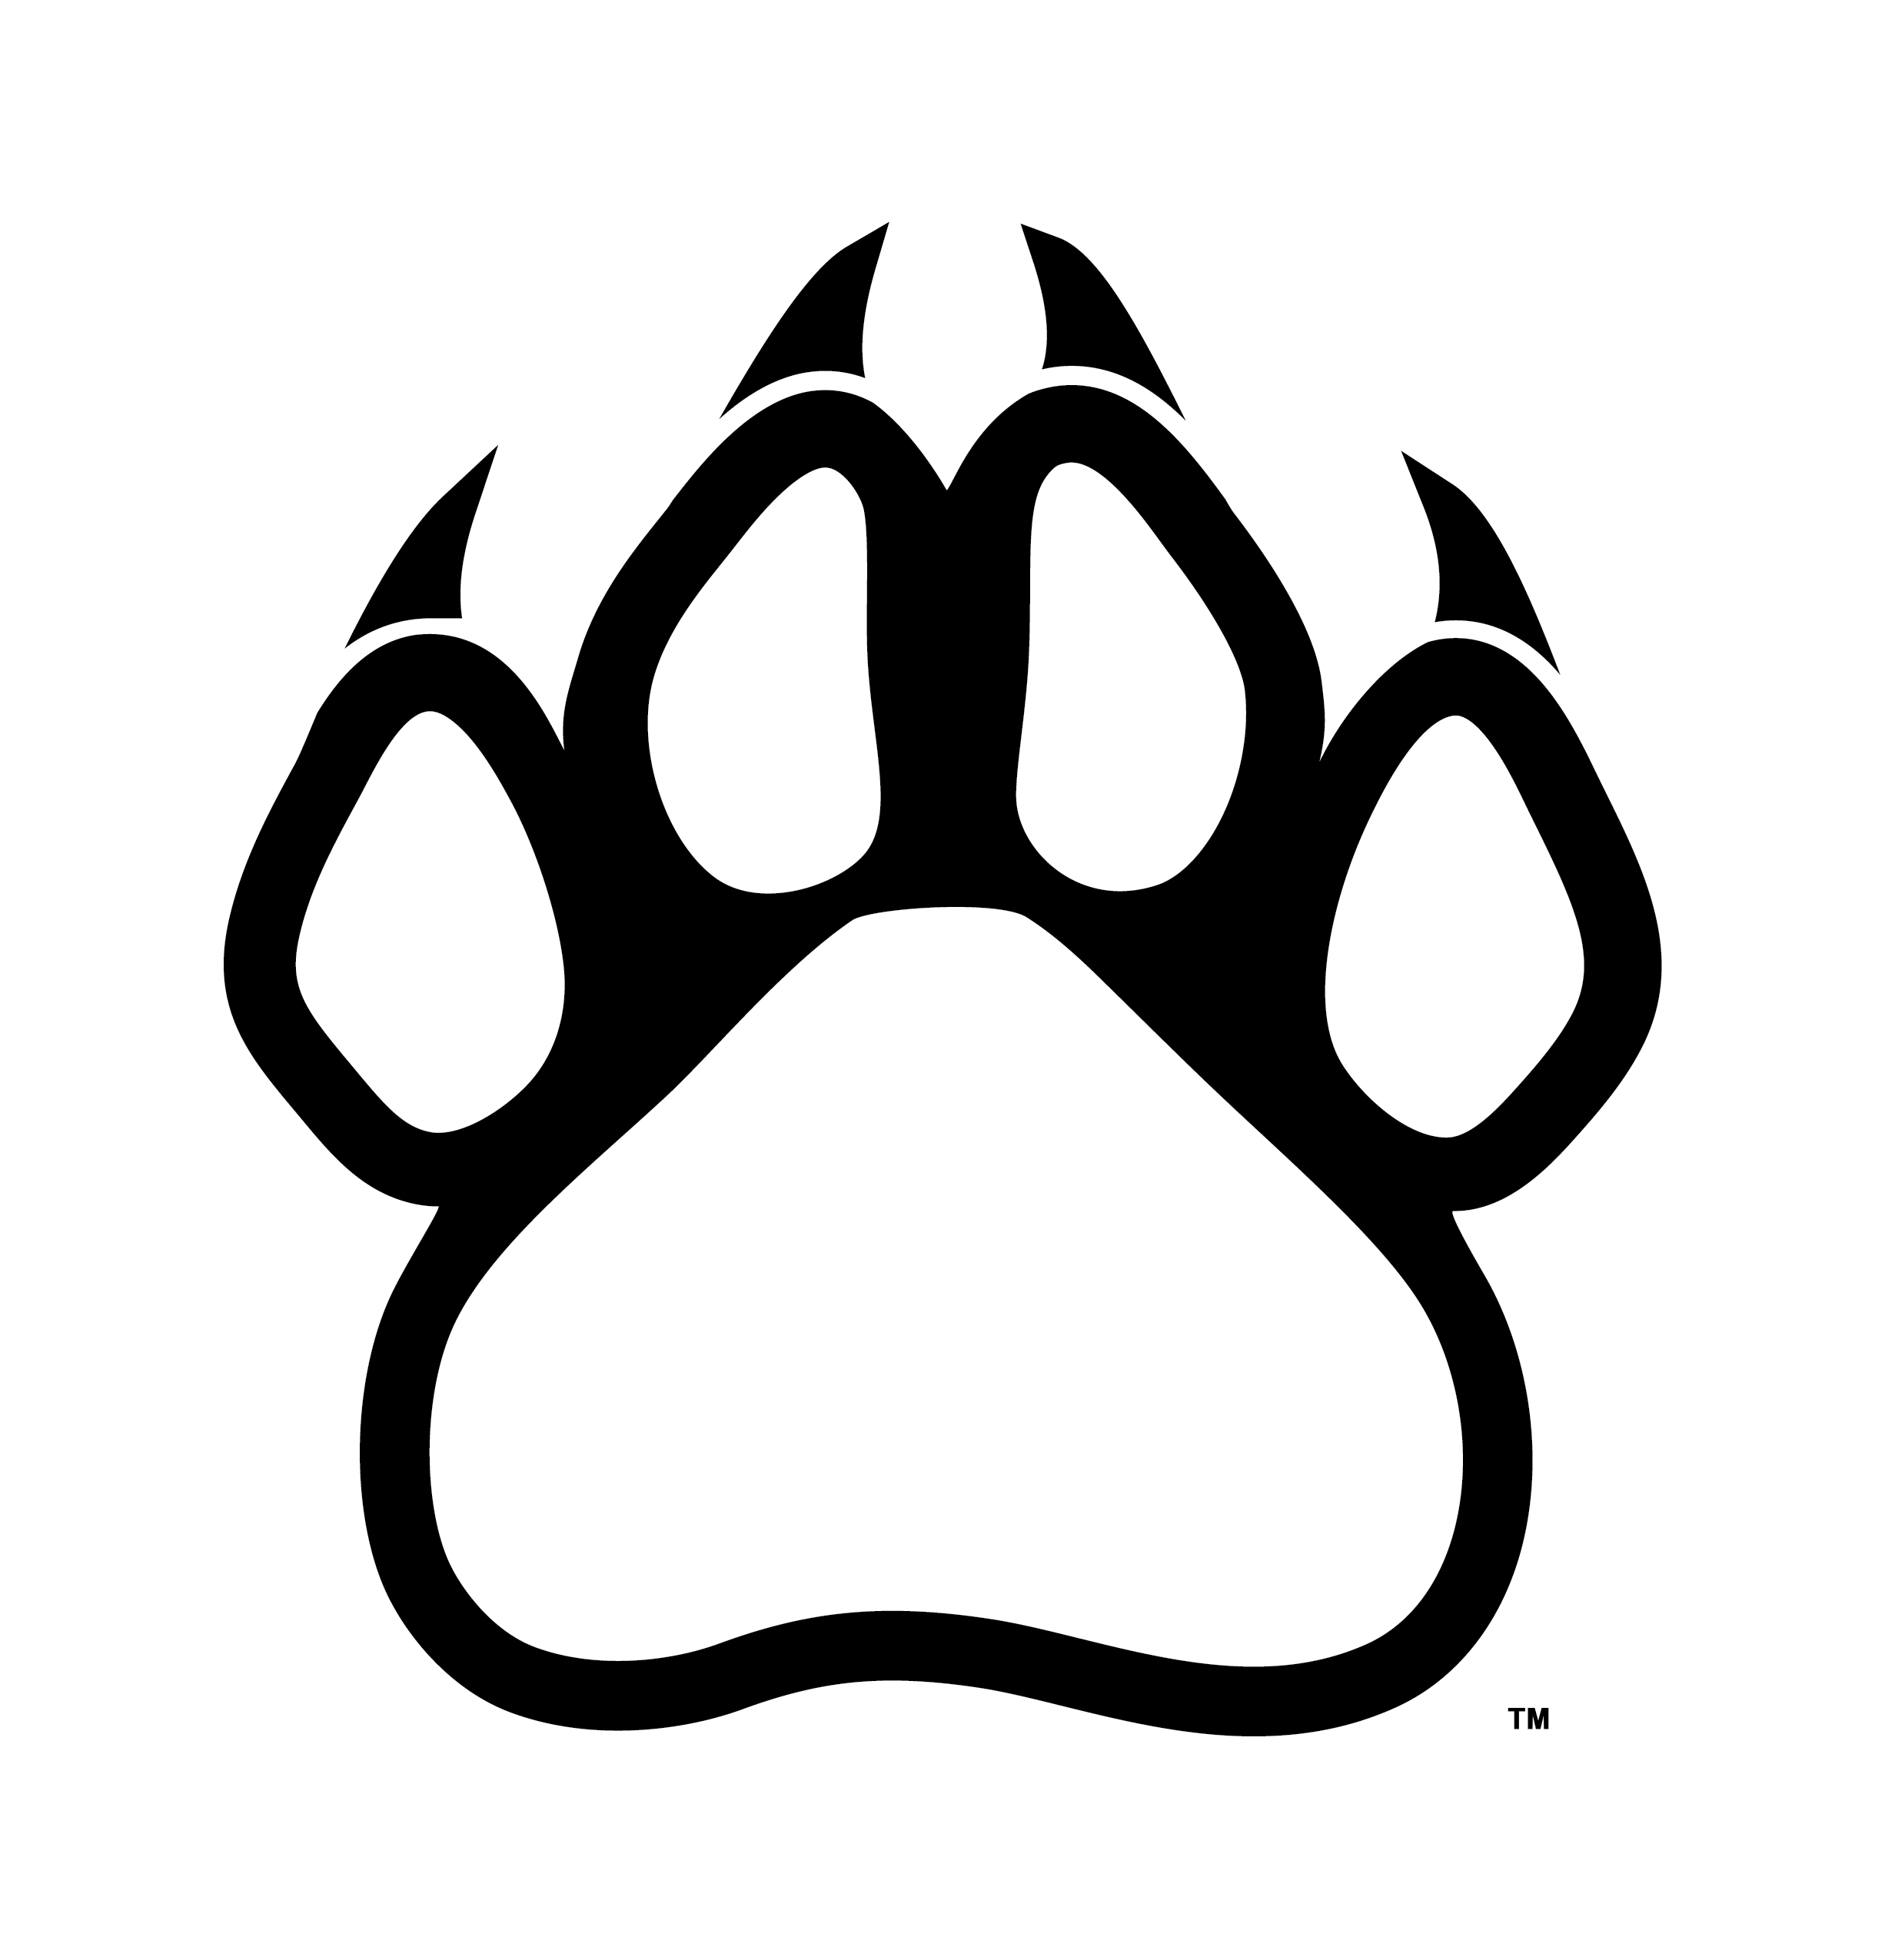 Cougar paw print clipart.